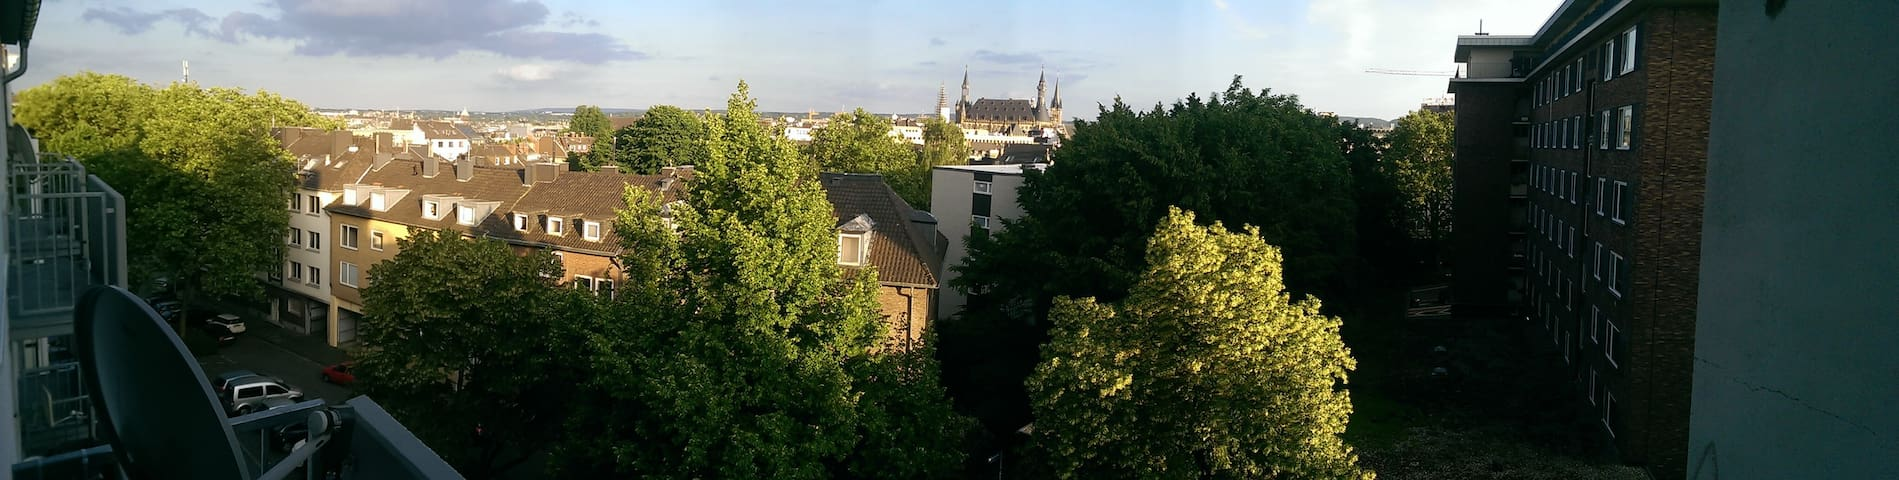 At the Campus in the heart of Aachen - Aachen